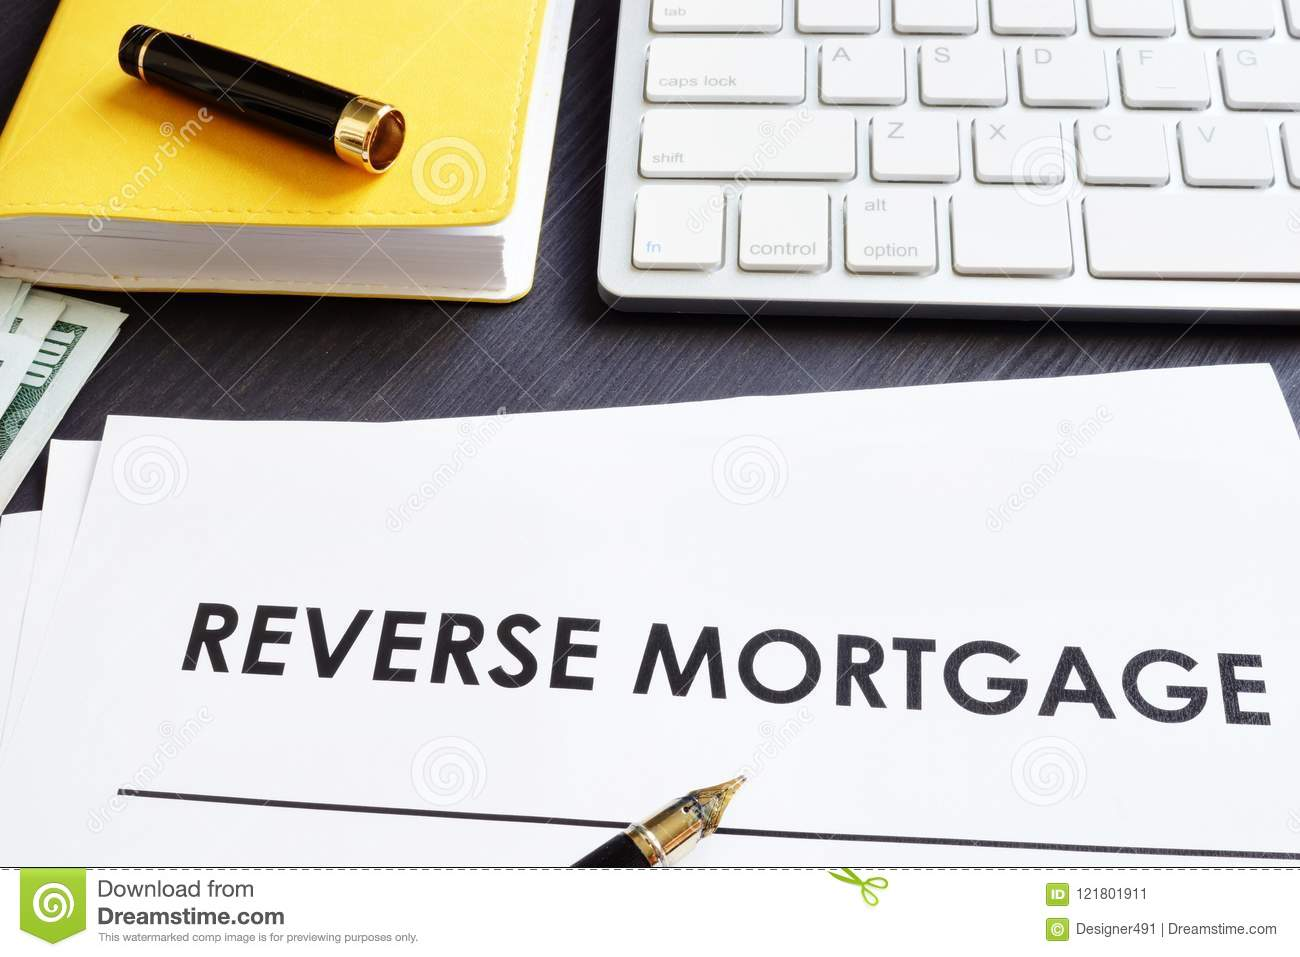 Reverse mortgage agreement and pen.